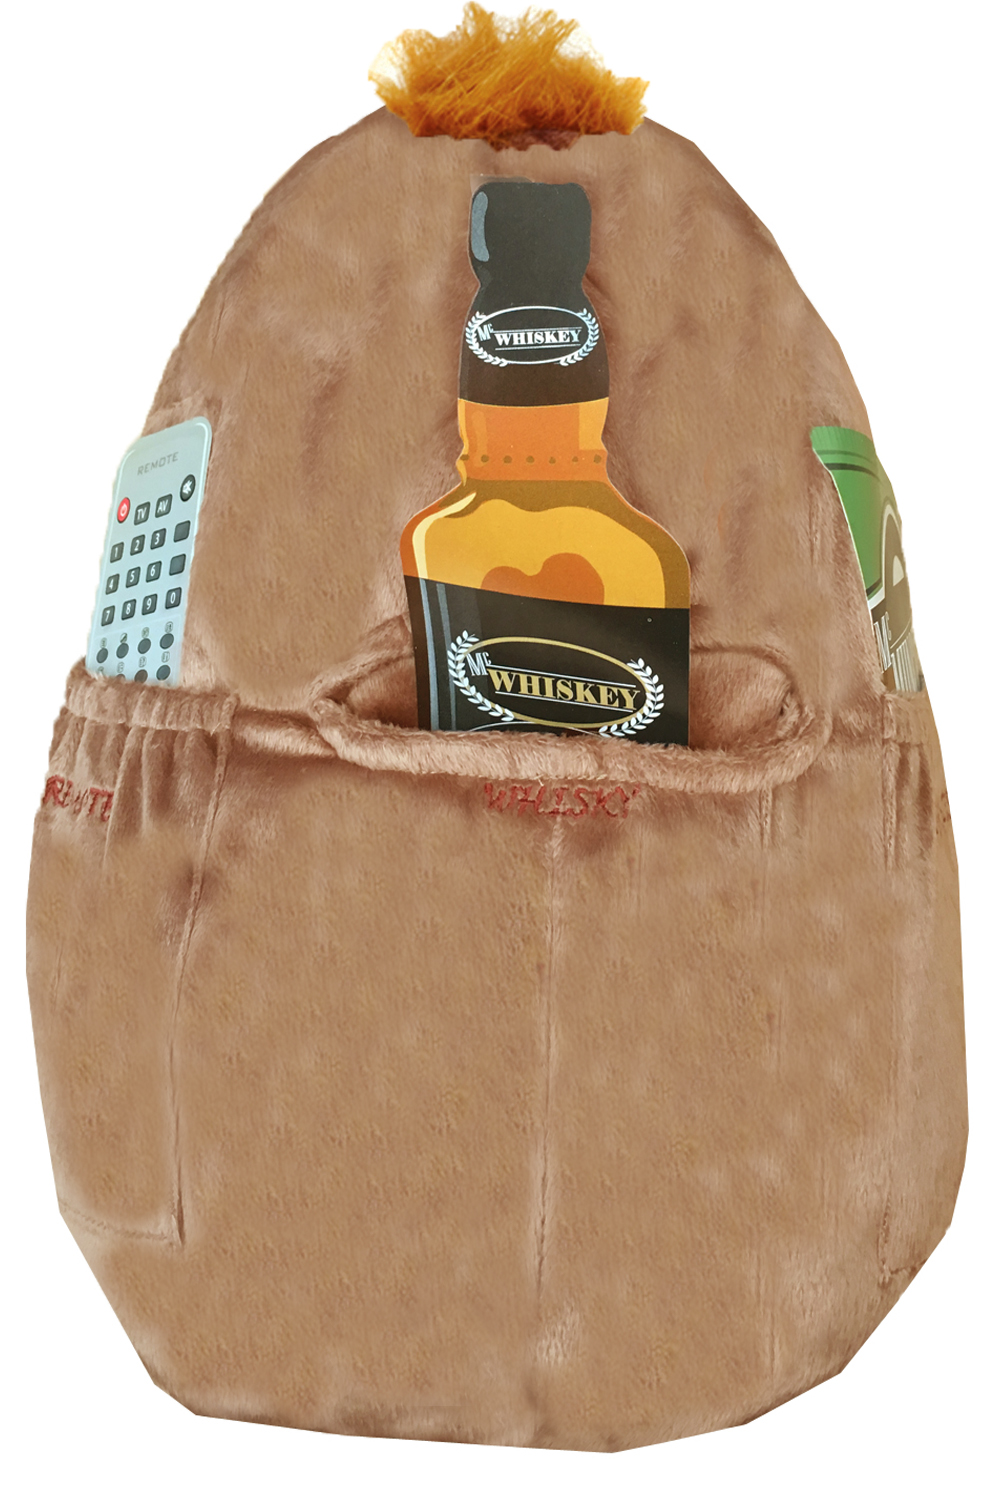 Novelty-Mac-Spuddy-Couch-Potato-Remote-Snack-Holder-Scottish-Pocket-Cushion thumbnail 3